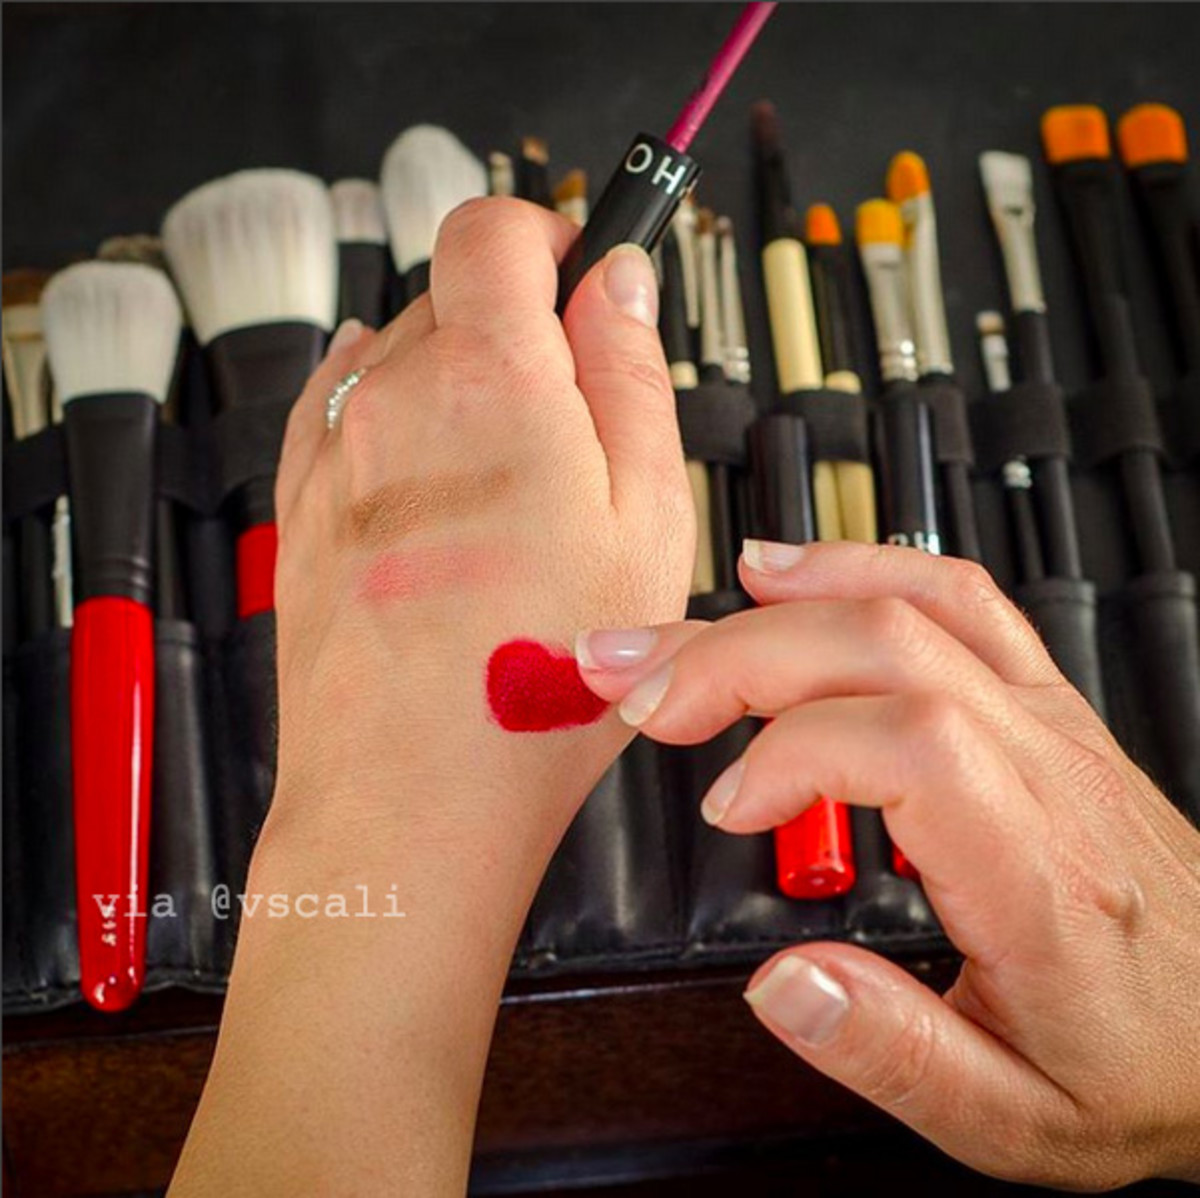 Celebrity makeup pro Vanessa Scali mixes two Sephora Collection Cream Lip Stain shades for Christina Hendricks, who attended the 2015 Emmy Awards on Sunday.